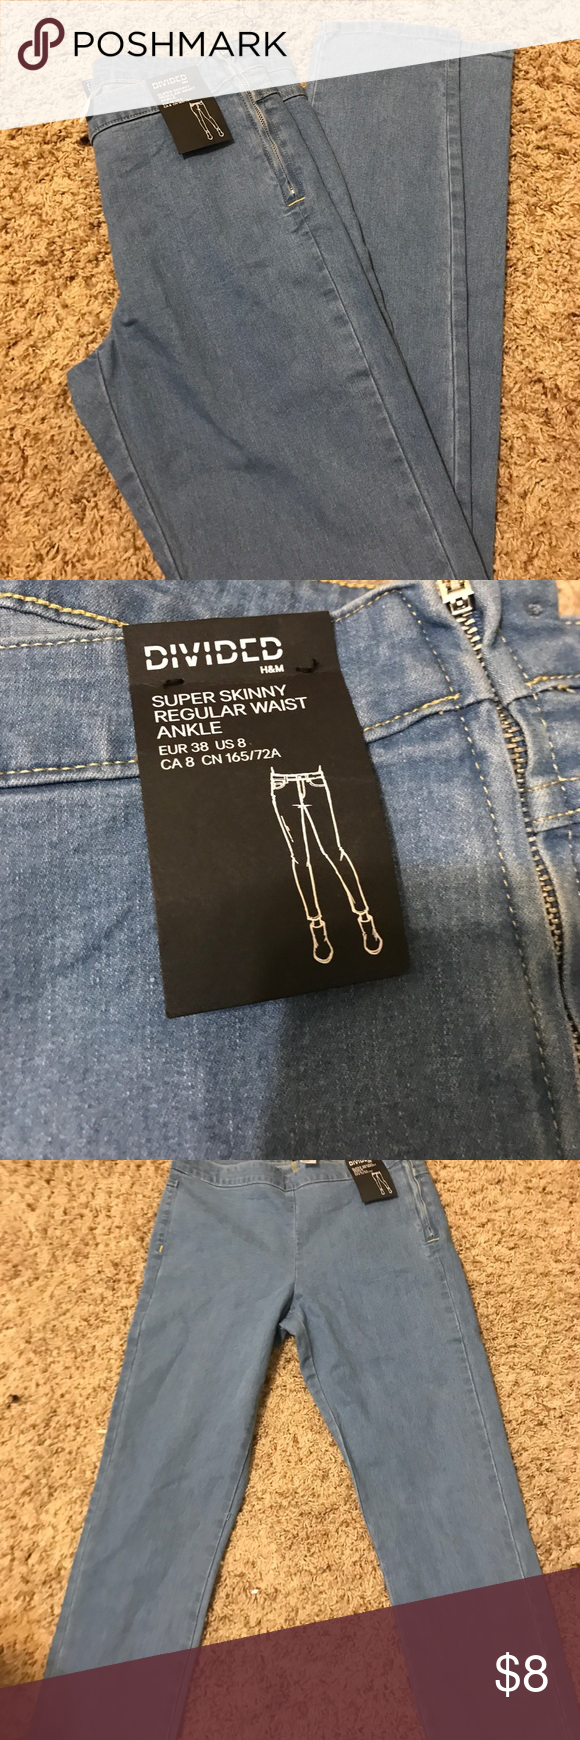 H&M DIVIDED Supper Skinny Regular Waist Ankle Never worn size 8 H&M Jeans Skinny